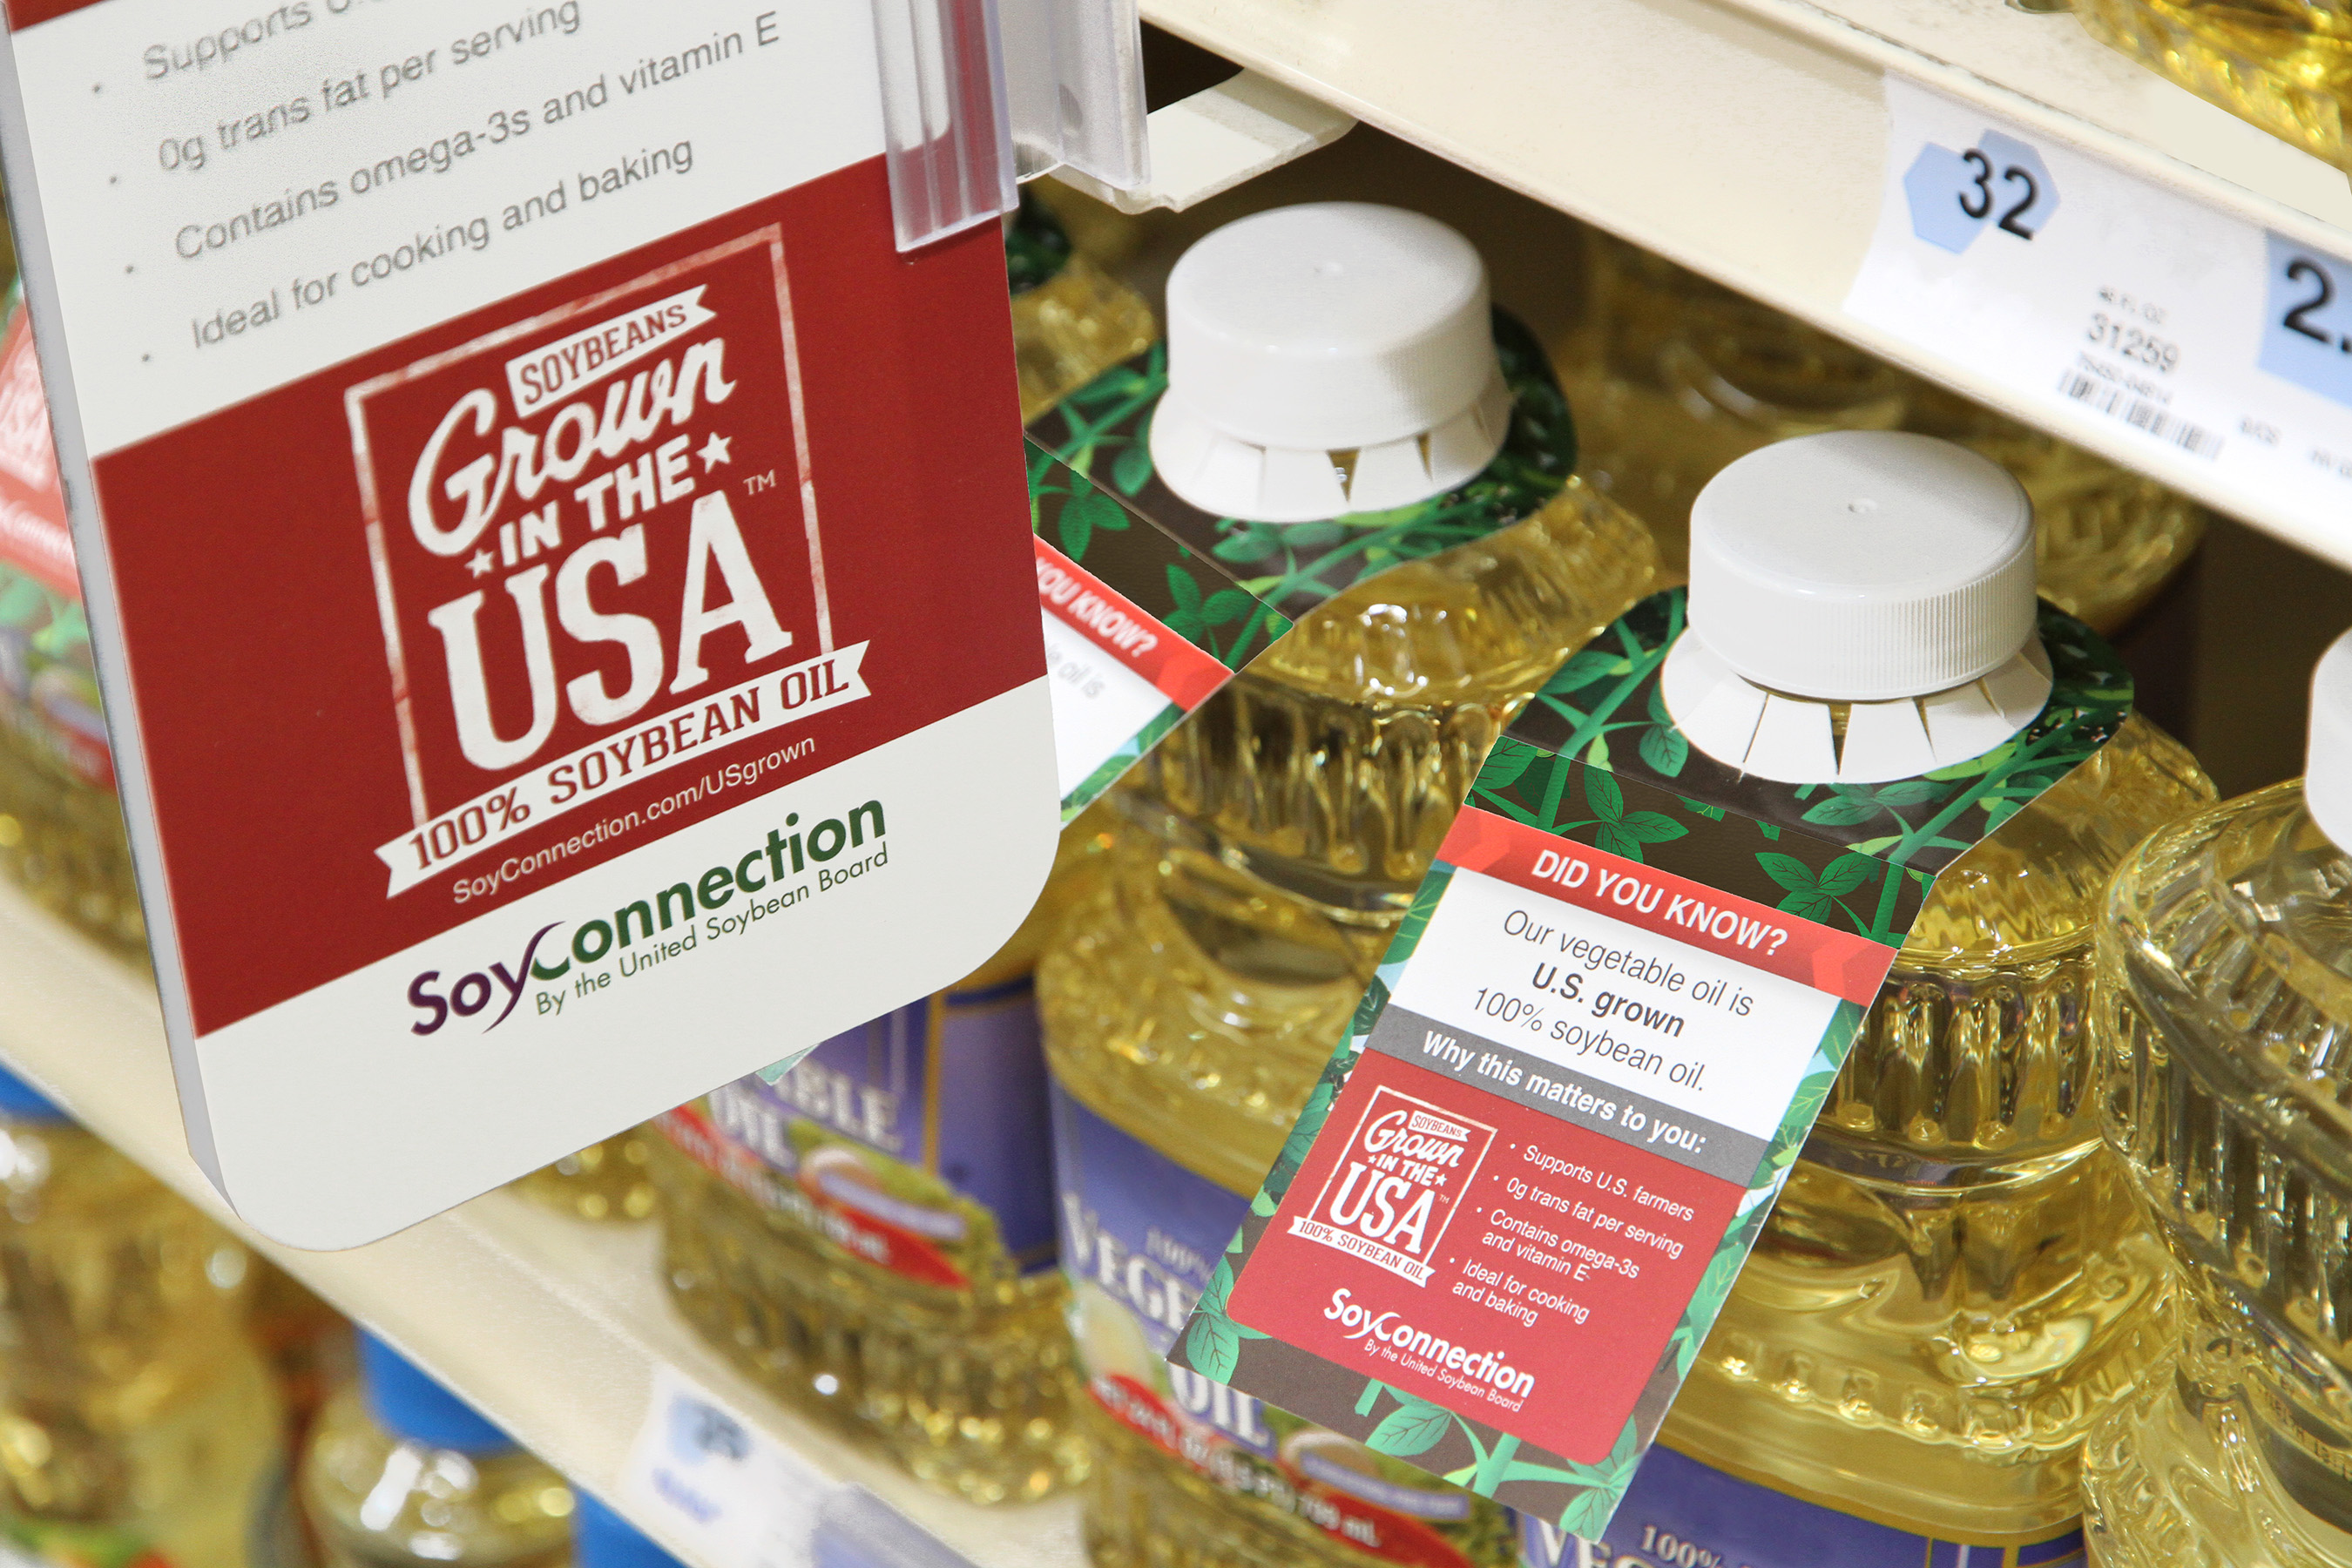 Did you know most vegetable oil is 100 percent soybean oil made from soybeans grown in the U.S.?